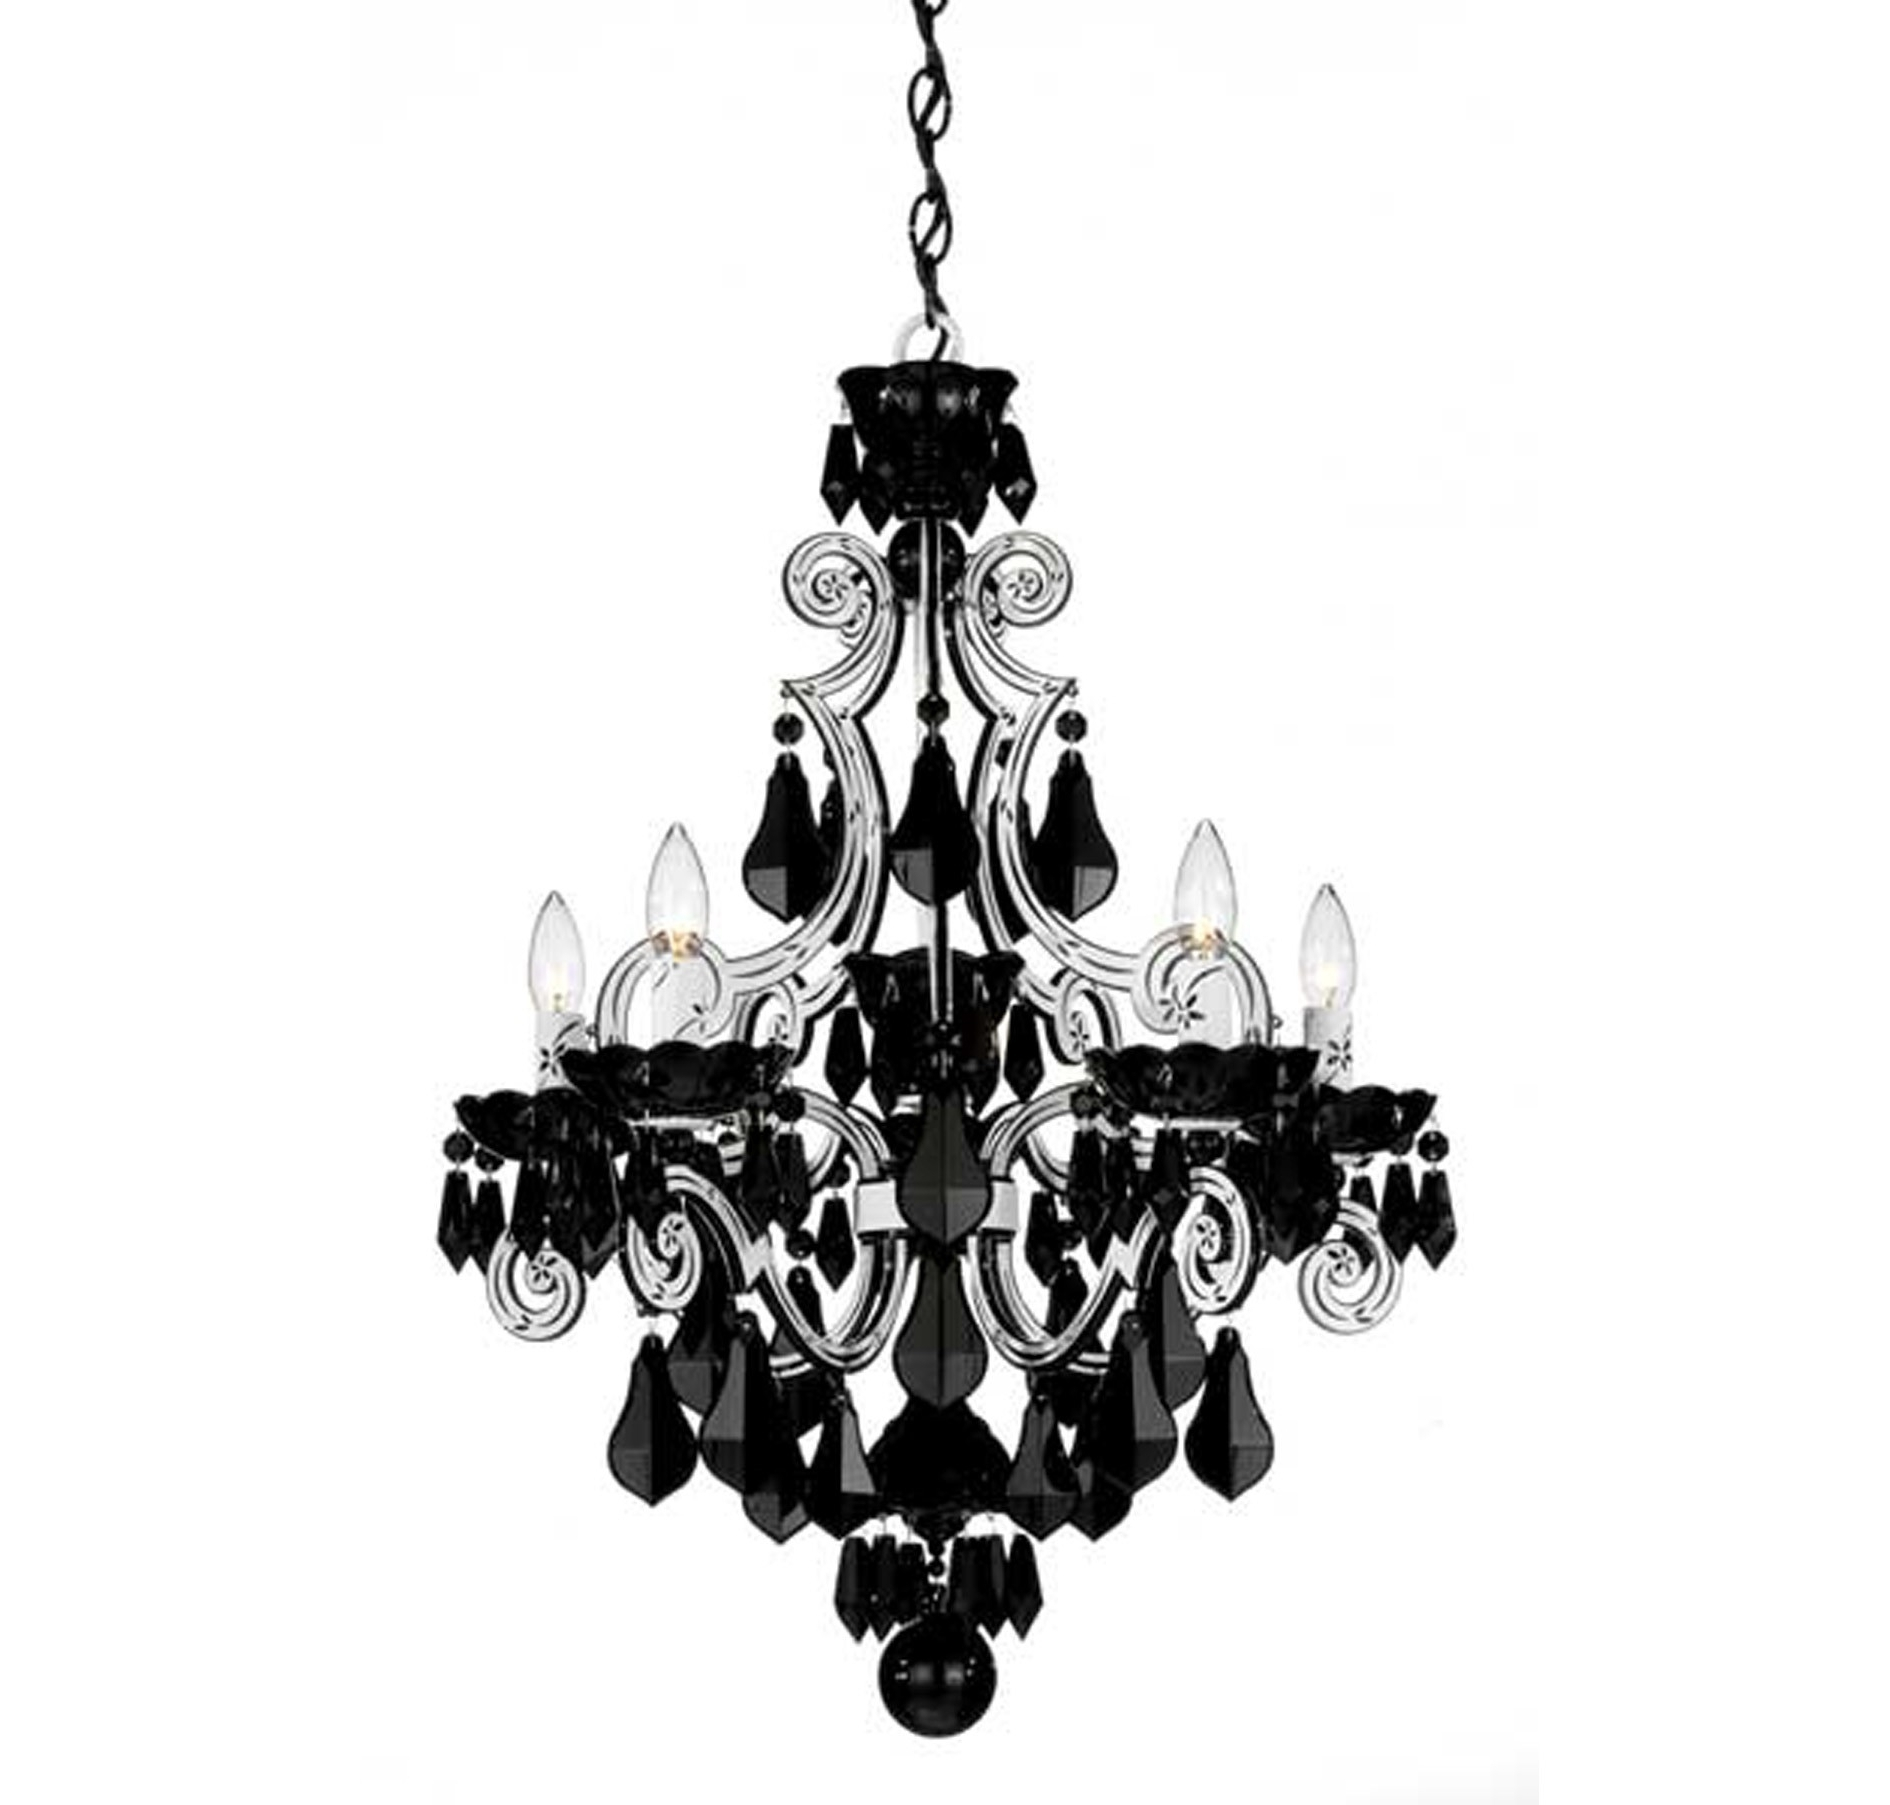 Black Glass Chandeliers Regarding Most Recent Light : Alluring Clear White Black Glass Crystal Chandelier Metal (View 9 of 20)